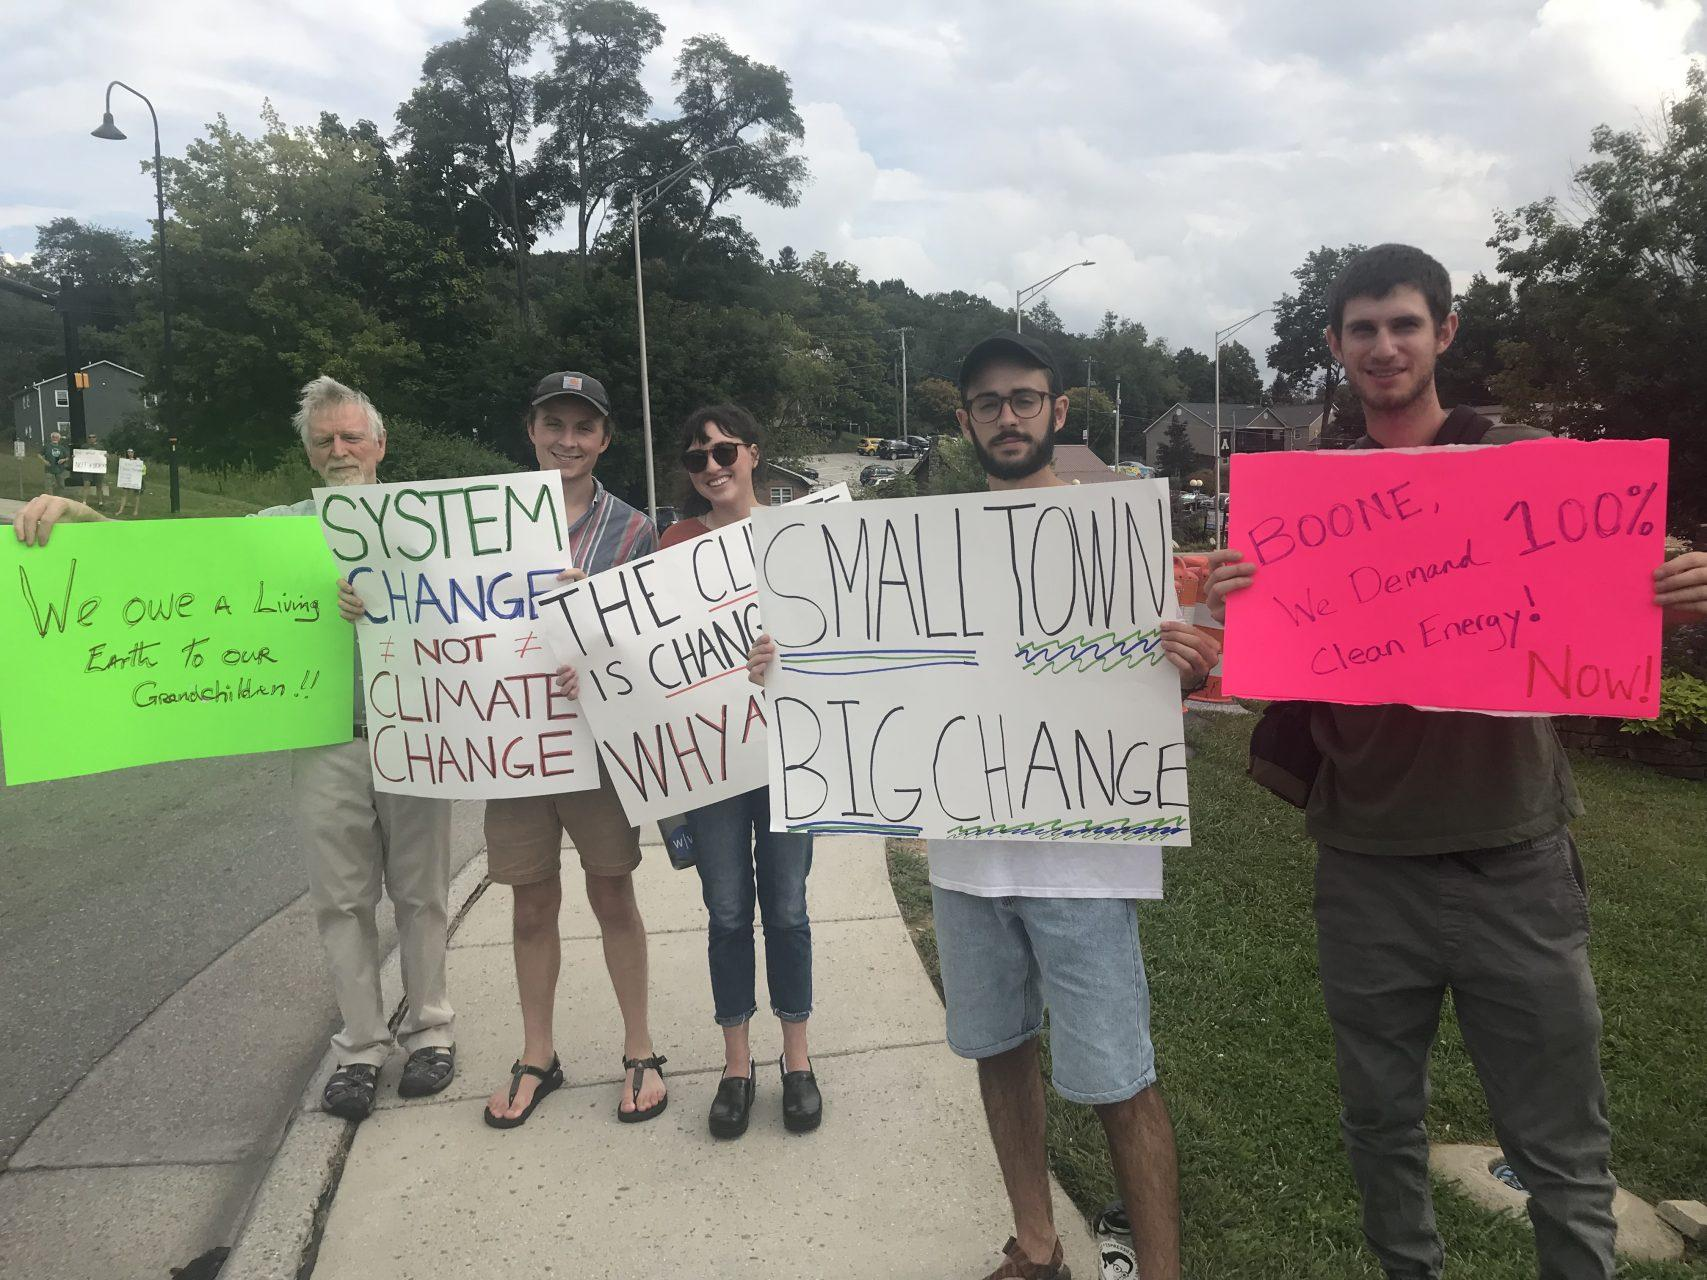 Boone citizens band together to inspire climate awareness